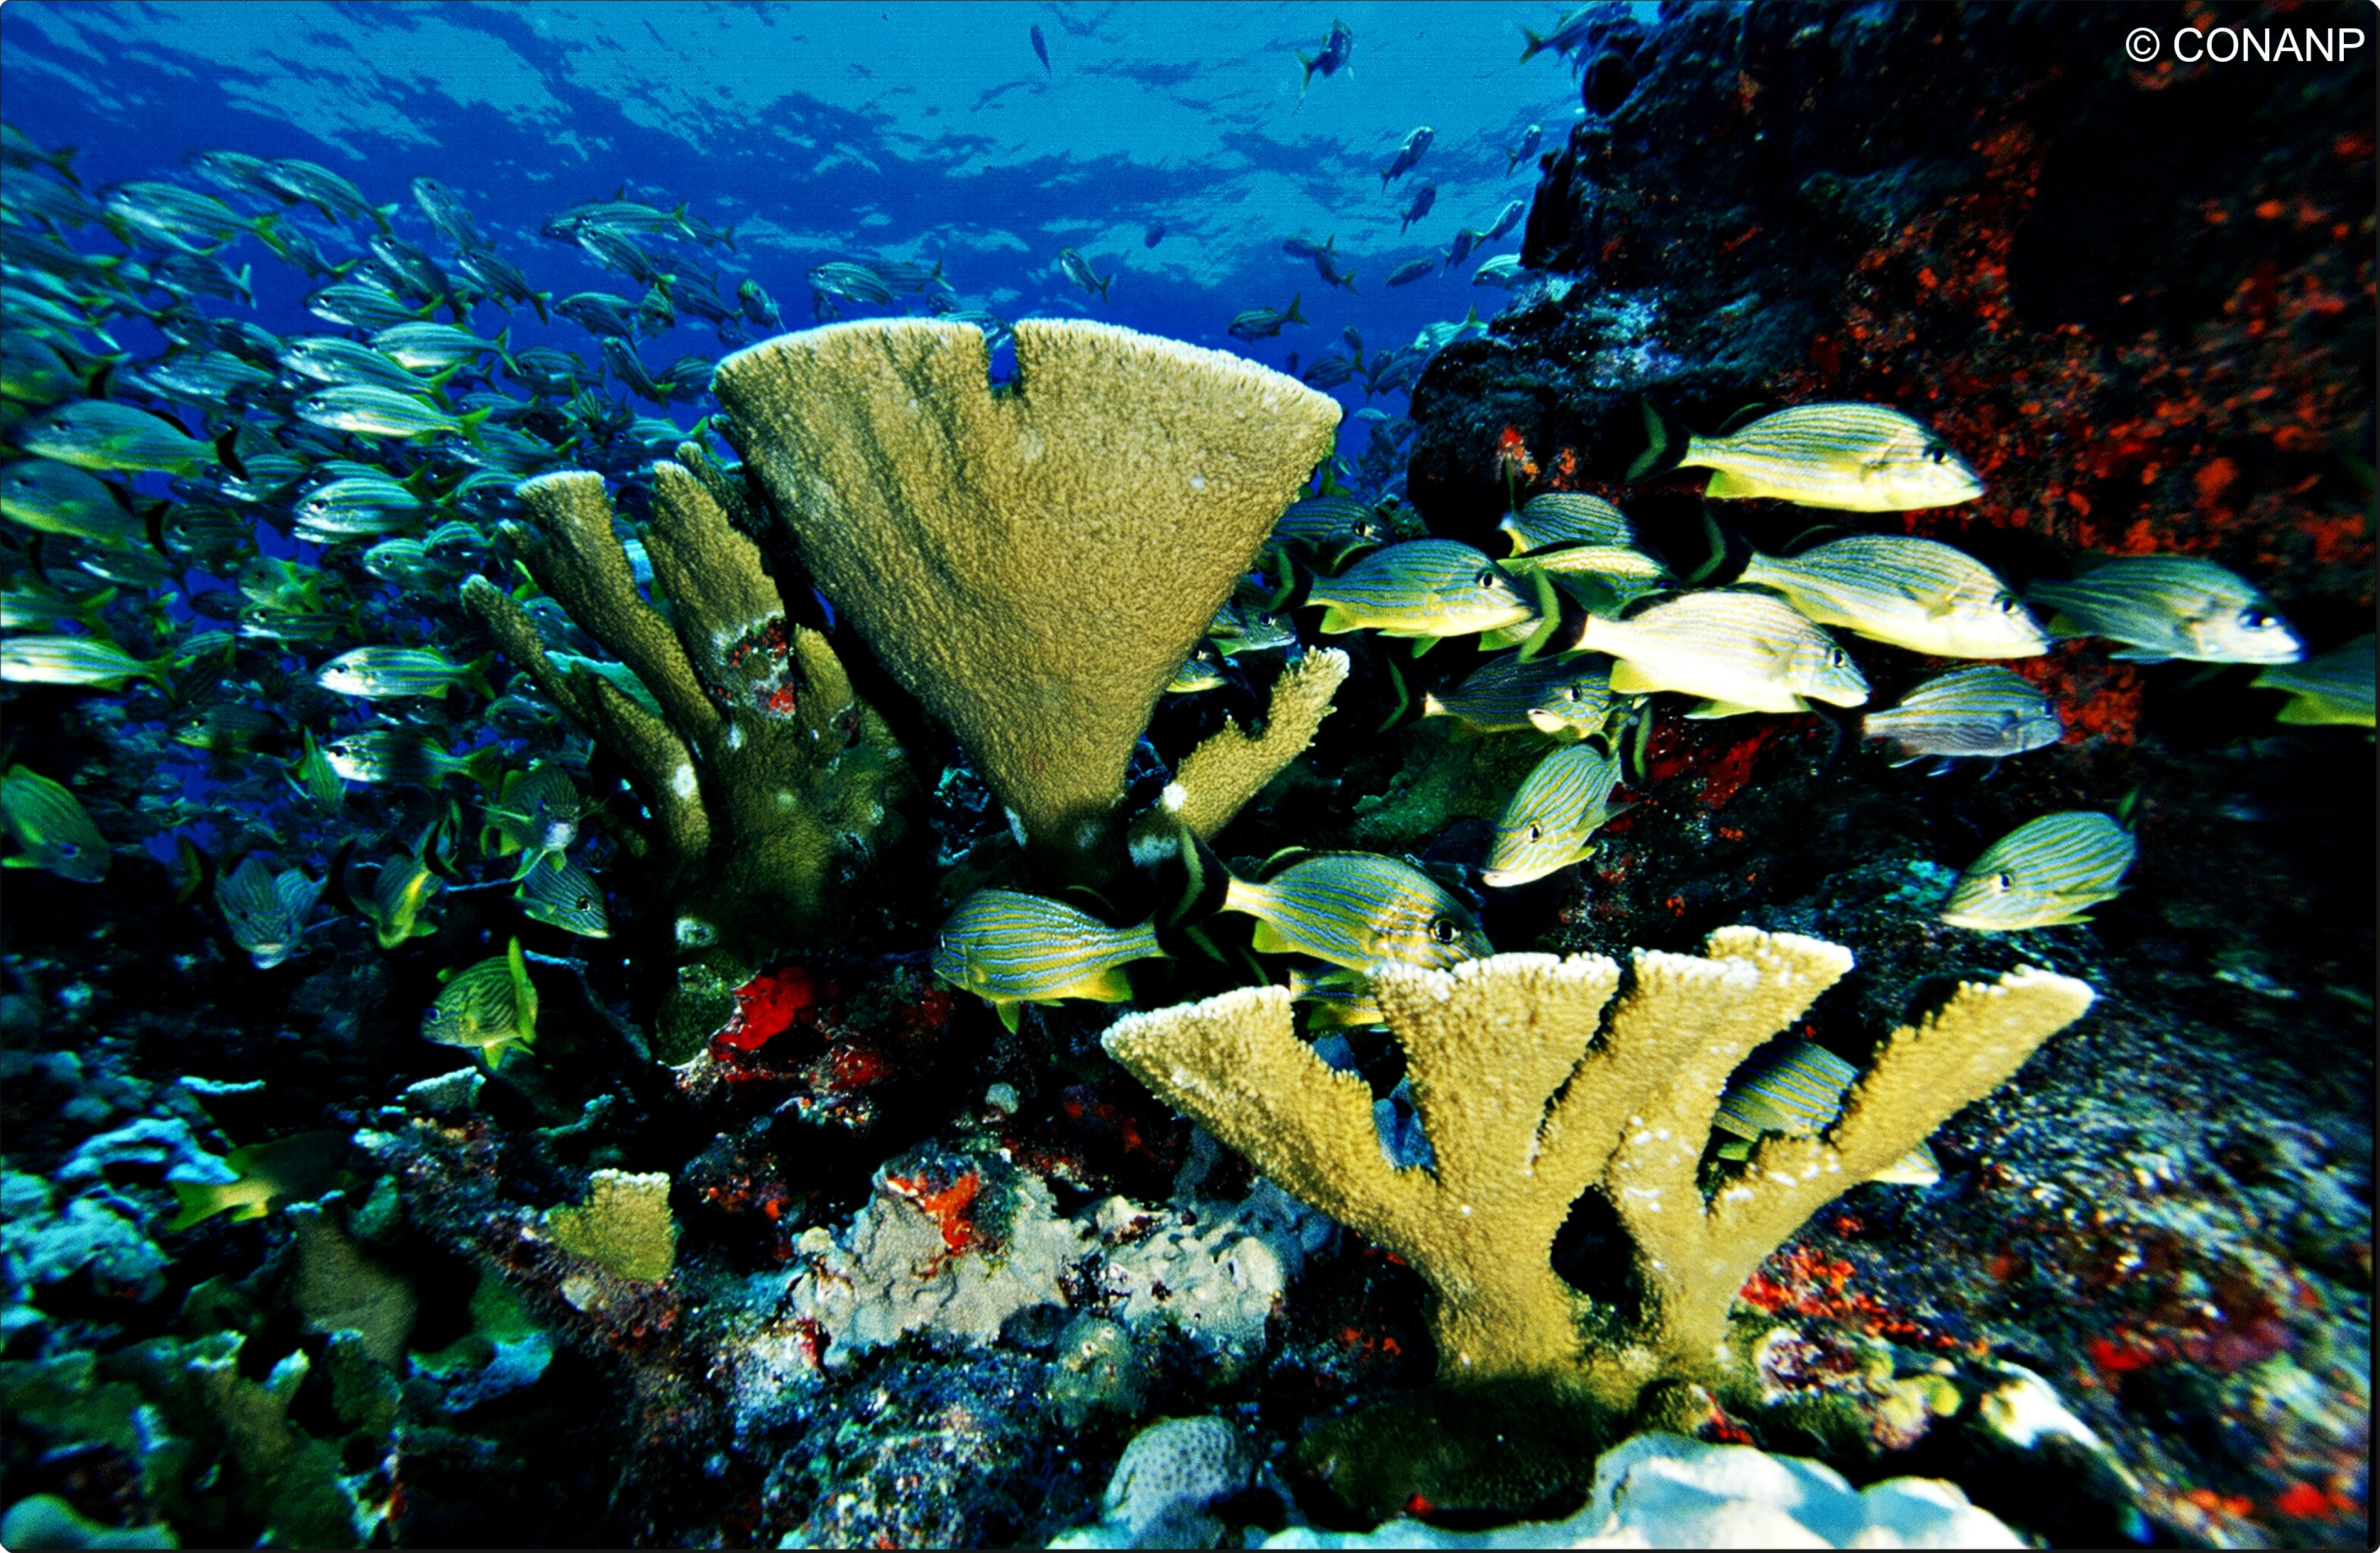 marine protection and biodiversity in mexico Marine biodiversity is under threat from a range of factors, but i would like to focus on the impacts of fishing on biodiversity, and specifically overfishing of marine species and communities and associated ecosystem changes, mortality of non-target species, and the impacts of fishing gear on habitat.